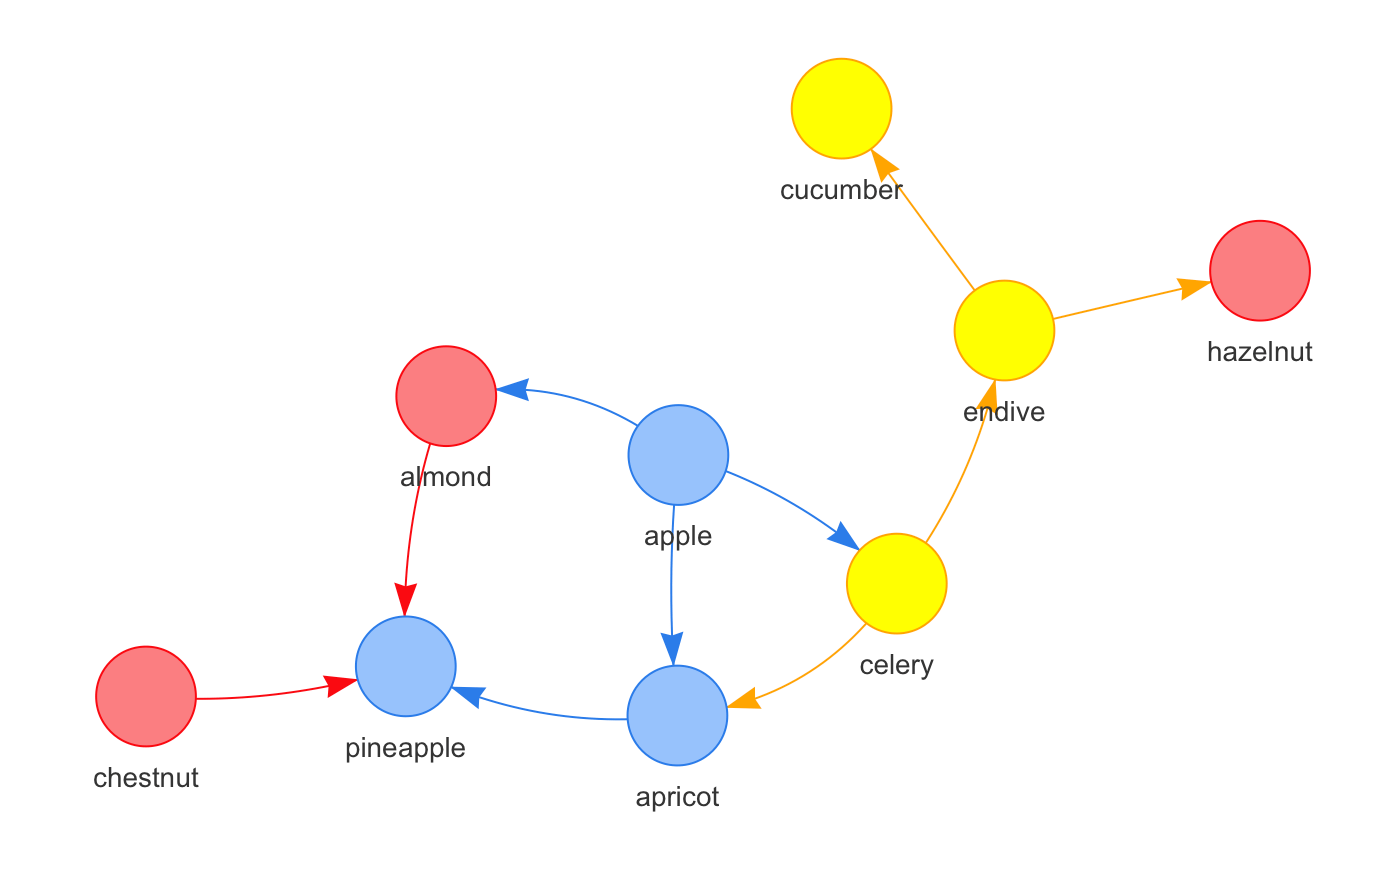 hight resolution of  view the internal ndf for sake of reference get node df graph nodes type label 1 1 fruit pineapple 2 2 fruit apple 3 3 fruit apricot 4